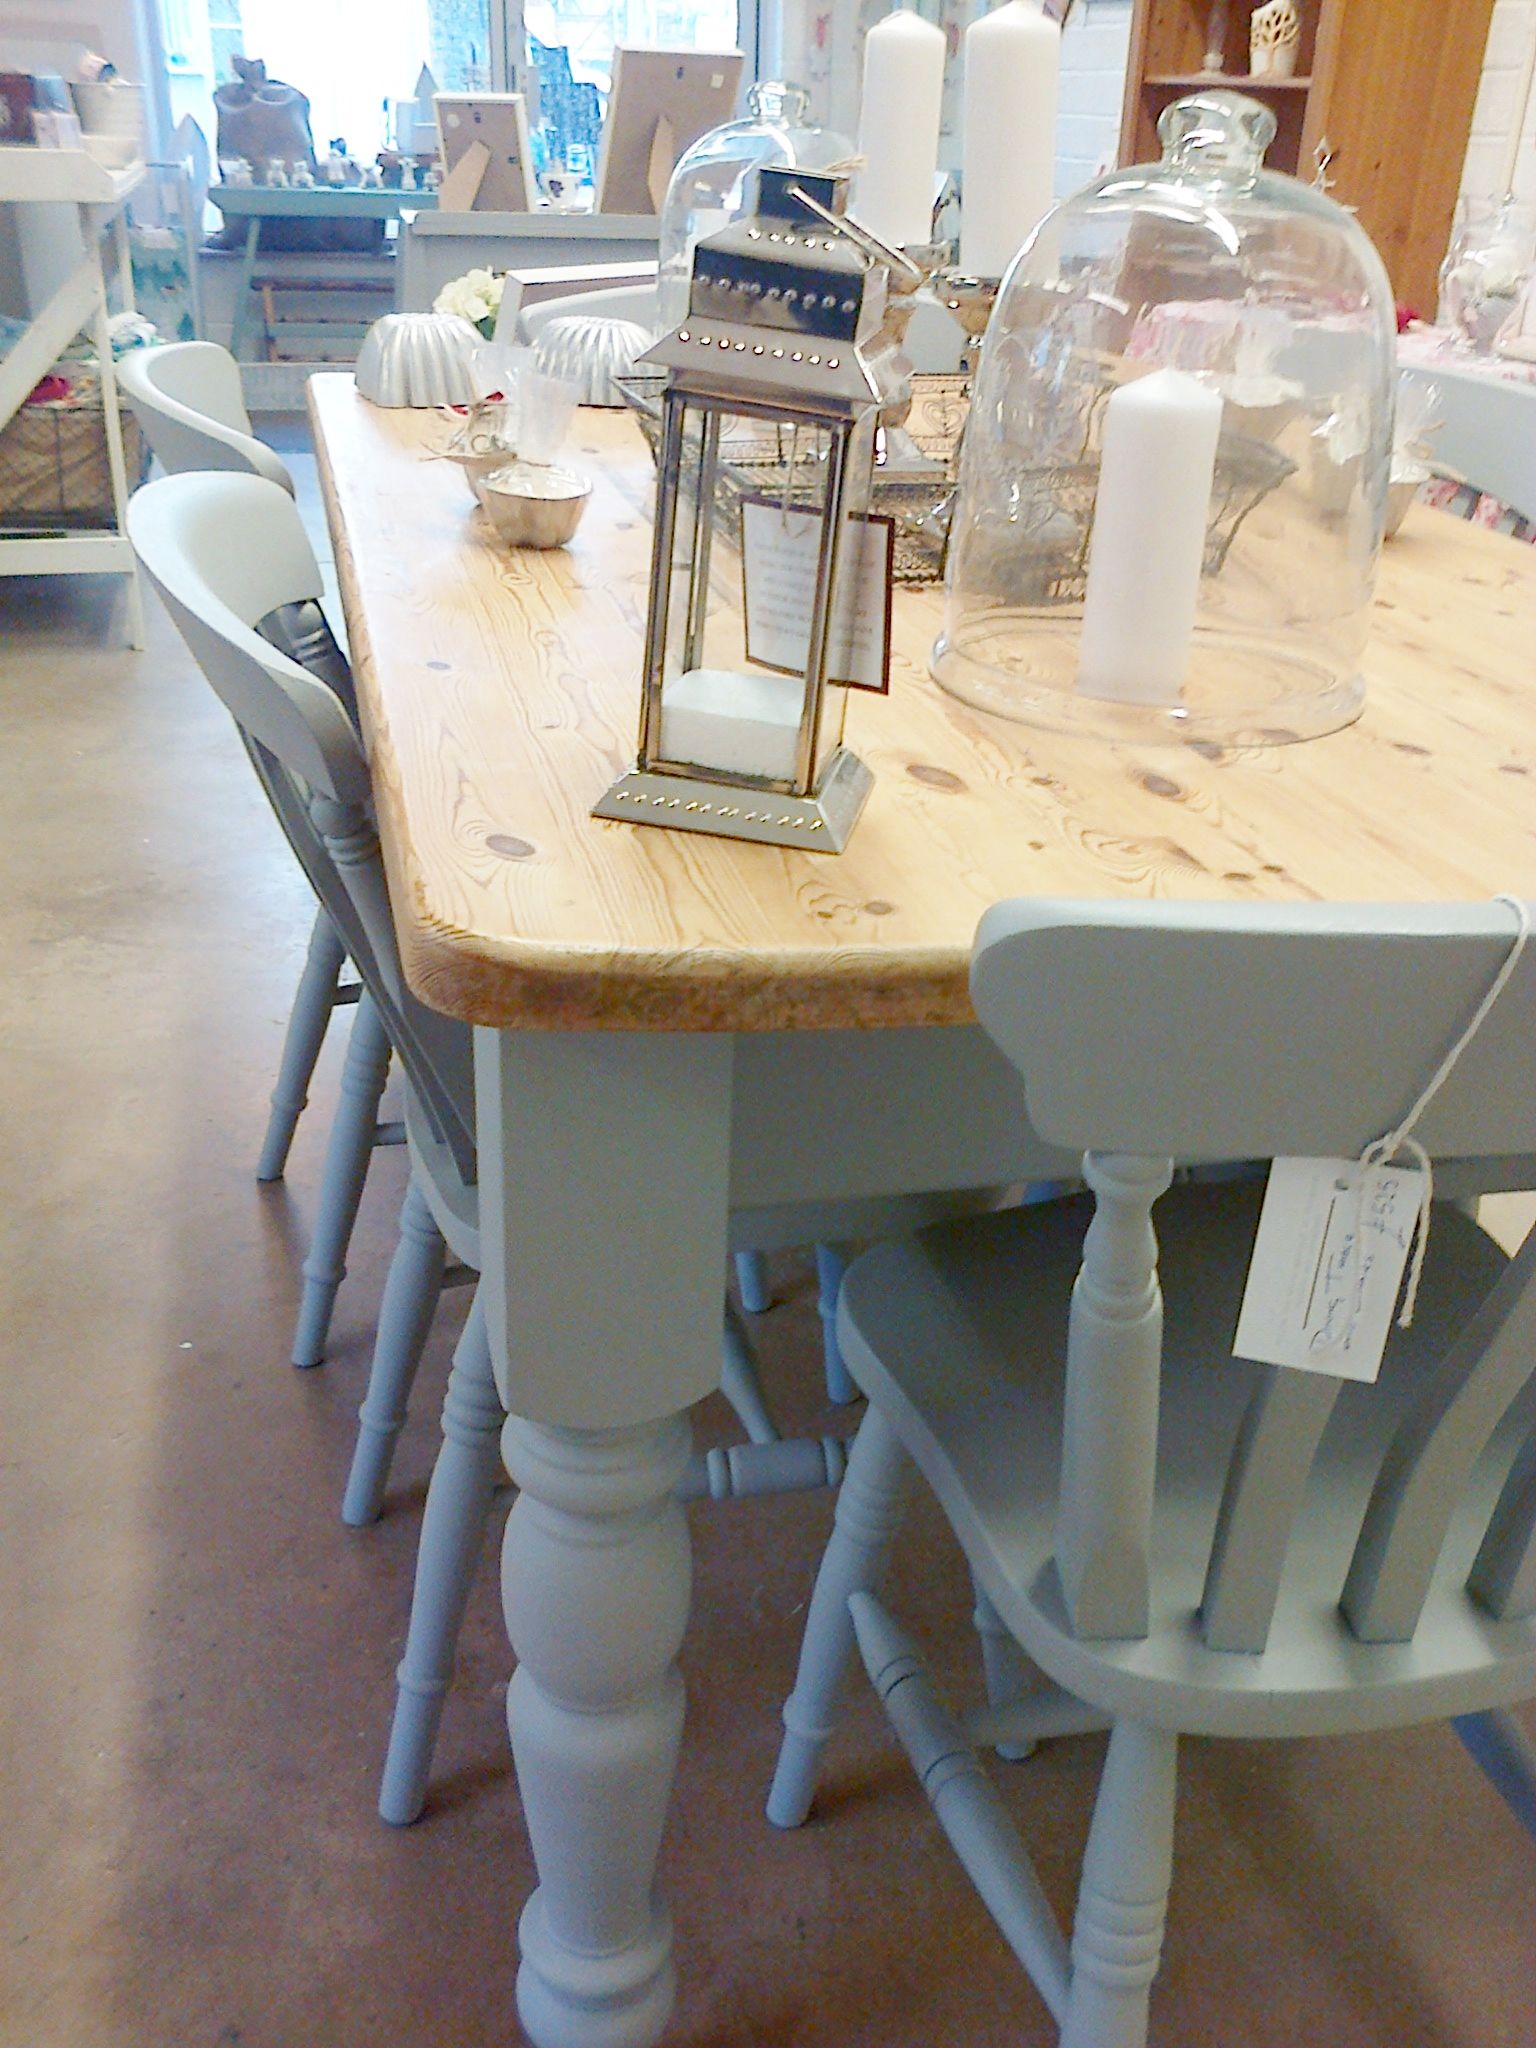 Painted Kitchen Chairs Pewter Faucet Fore Street Flea Exeter Pinterest Farmhouse